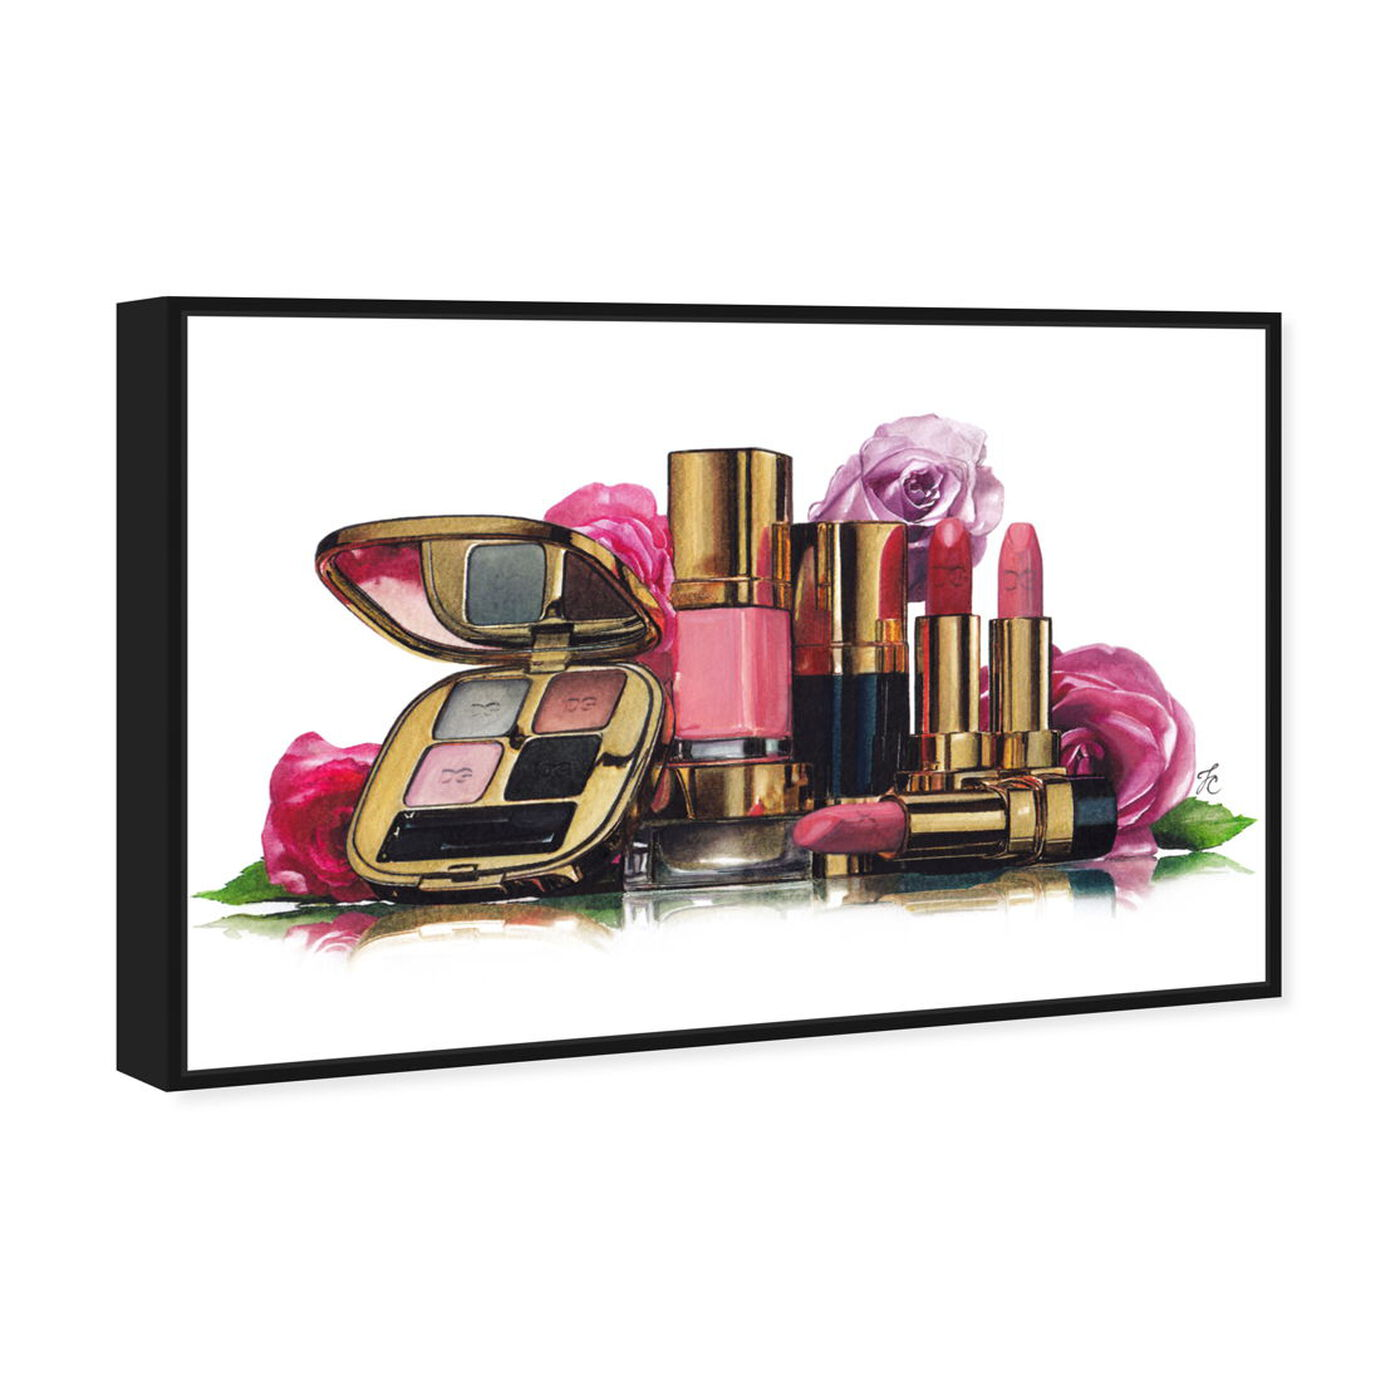 Angled view of Doll Memories - New Roses and Essentials featuring fashion and glam and makeup art.